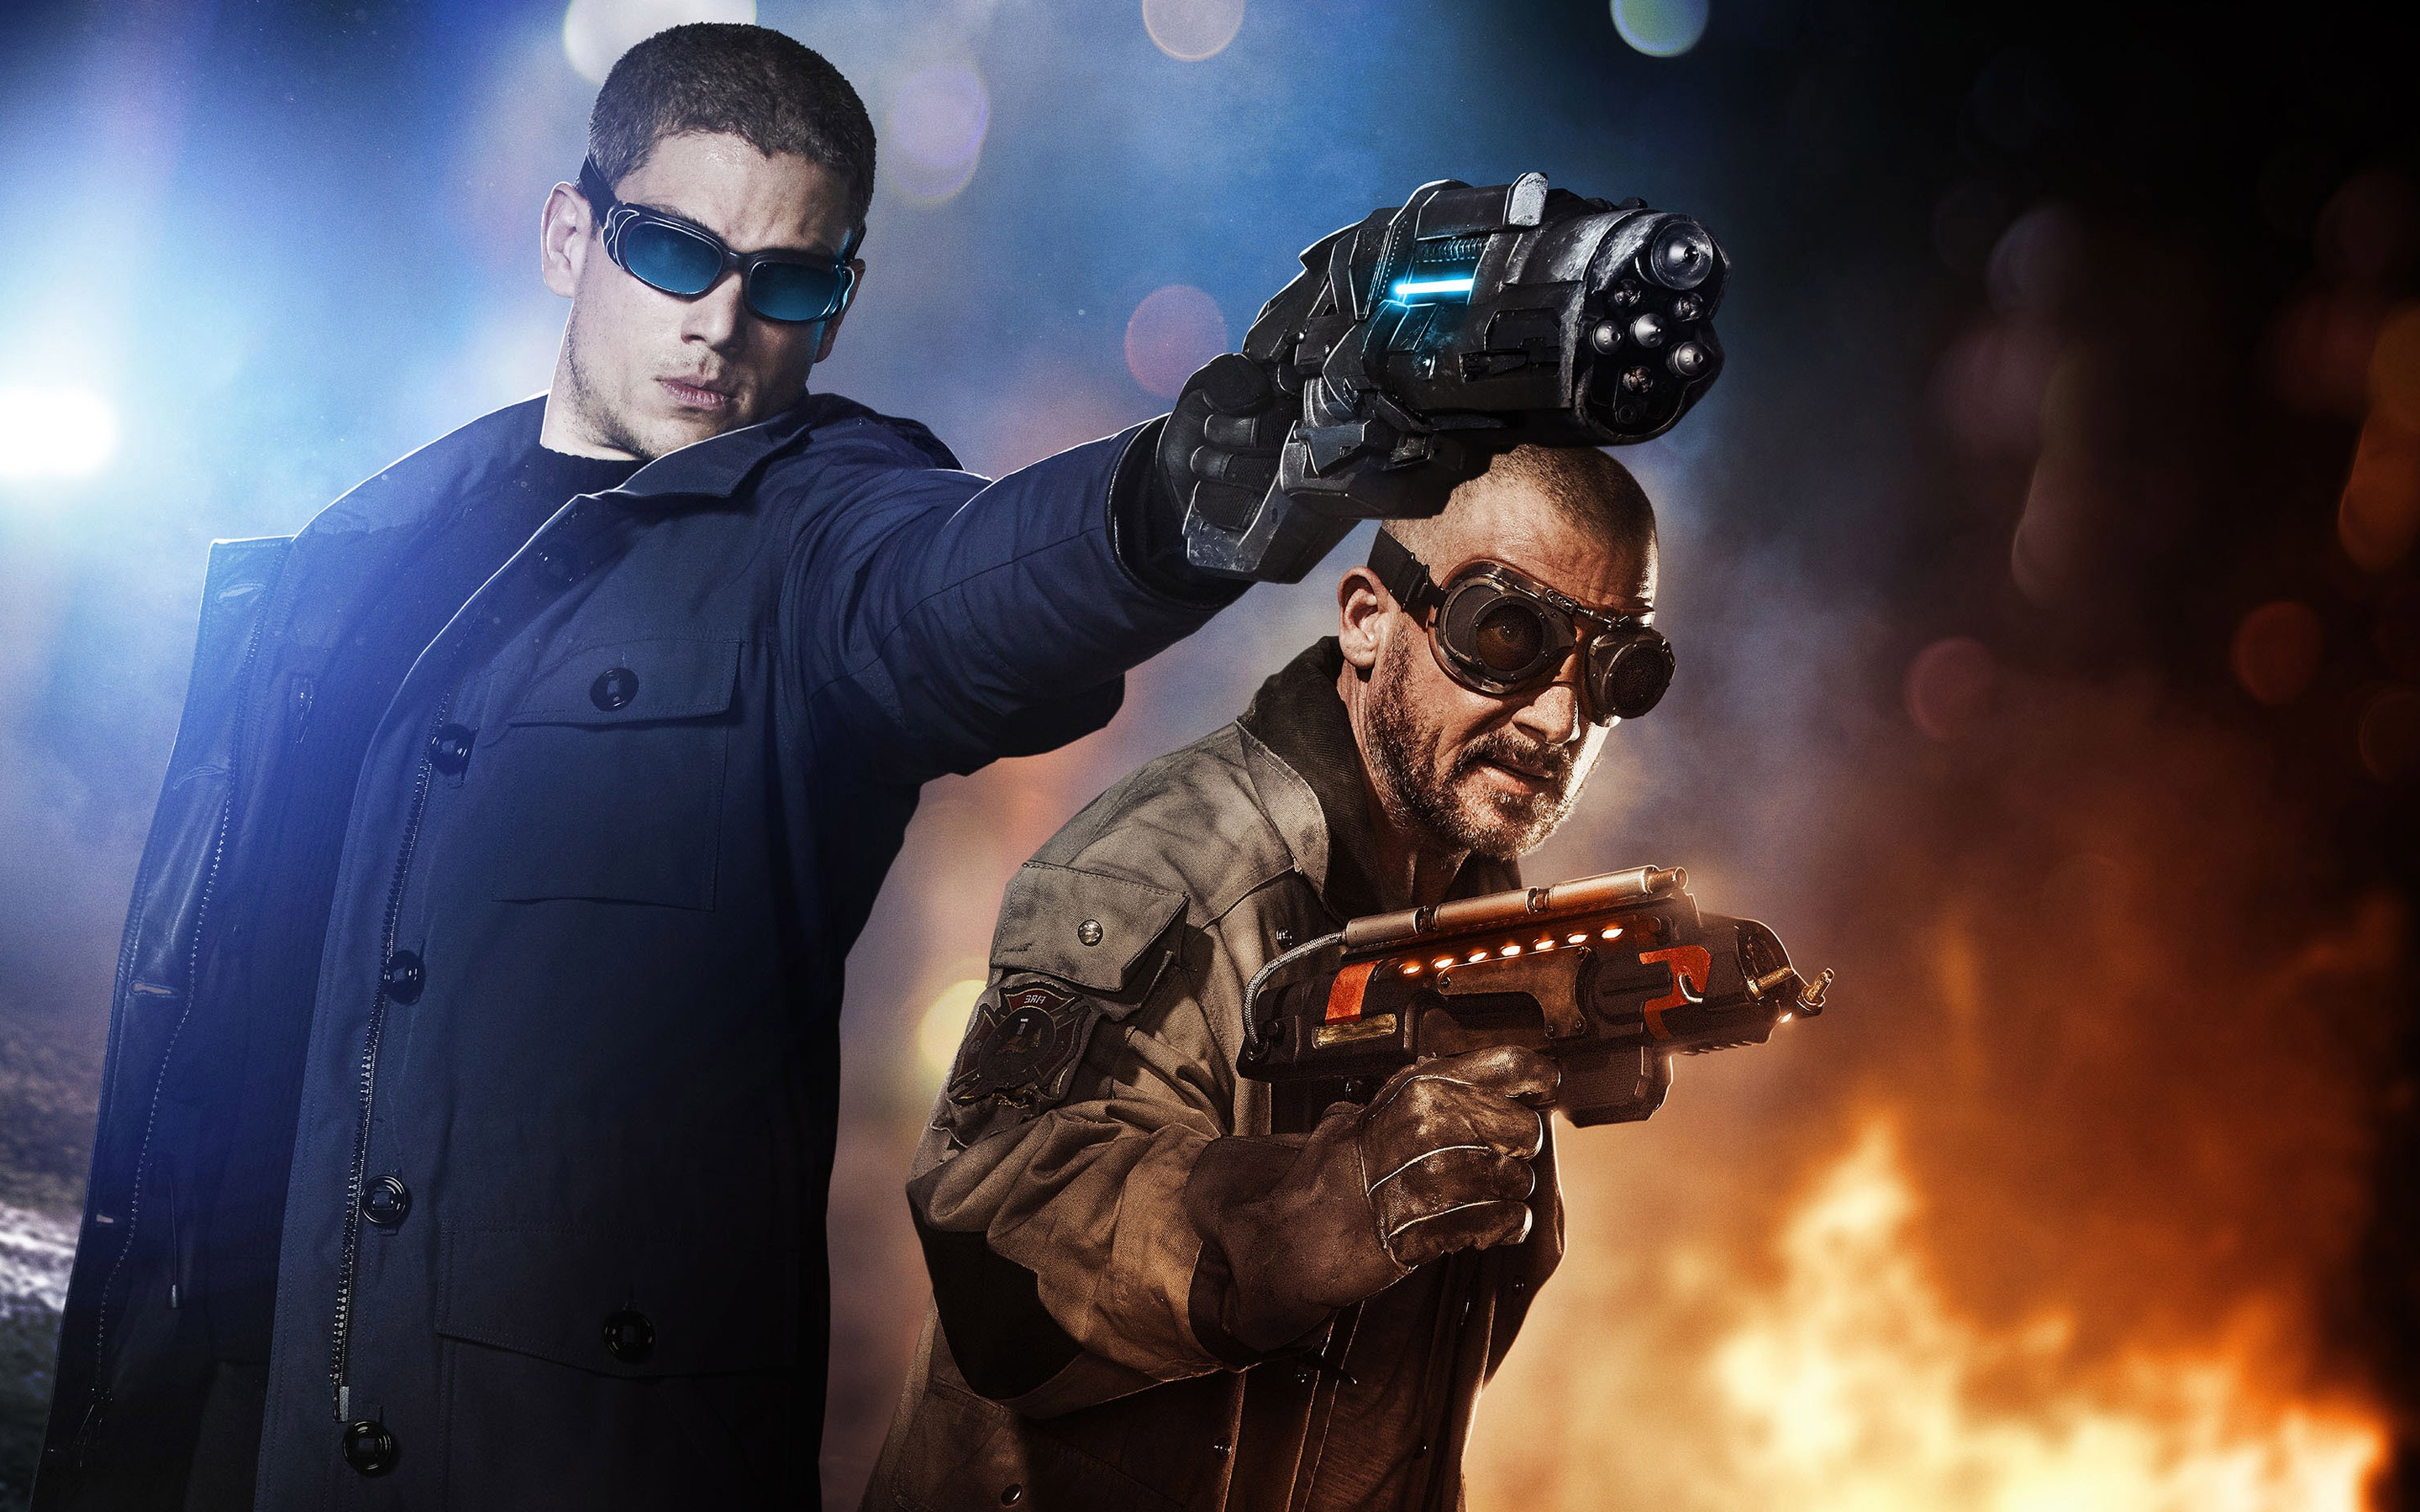 Captain Cold In The Flash Wallpaper HD Wallpapers 2880x1800